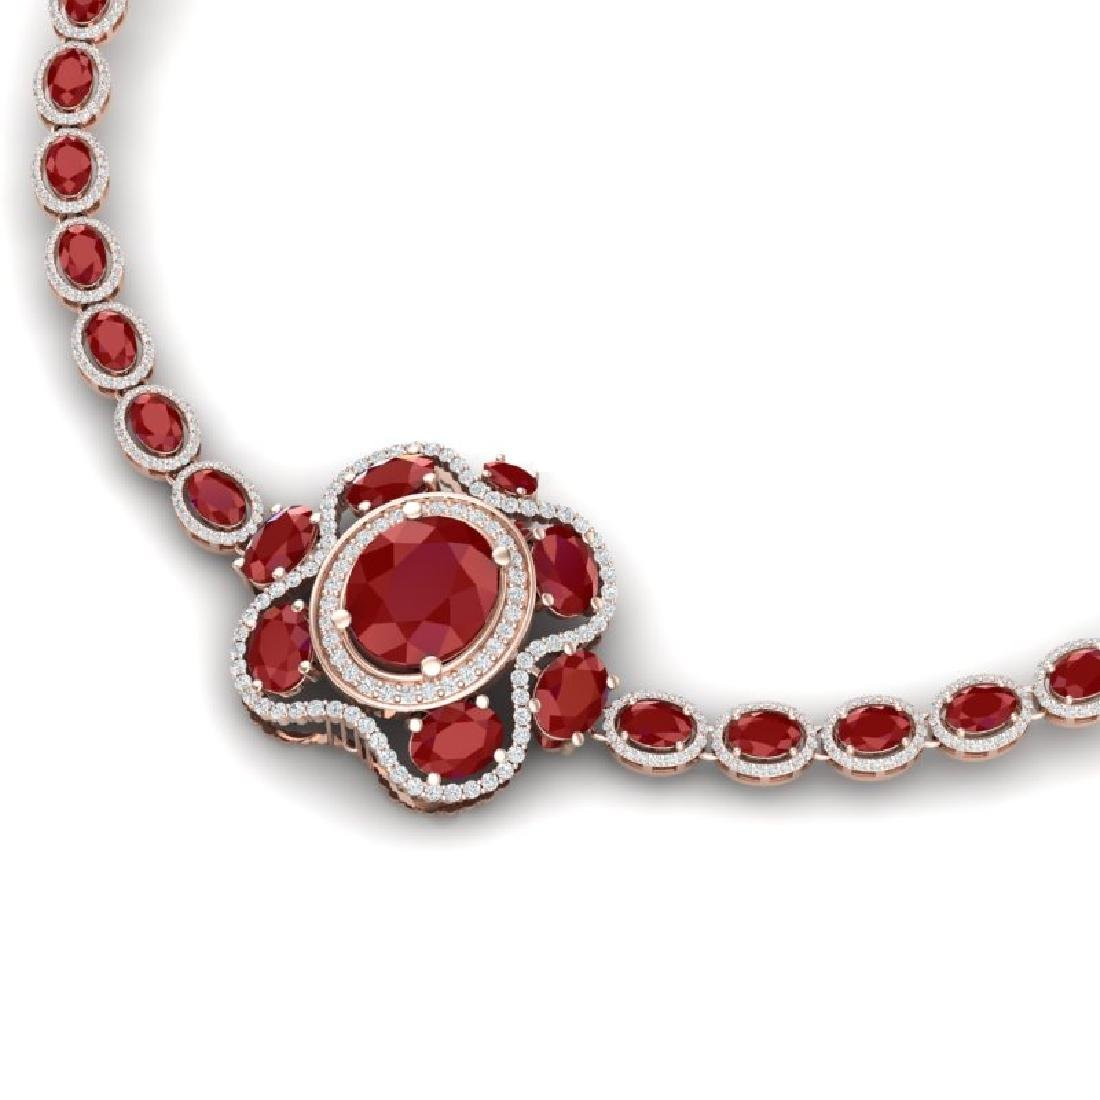 47.43 CTW Royalty Ruby & VS Diamond Necklace 18K Rose